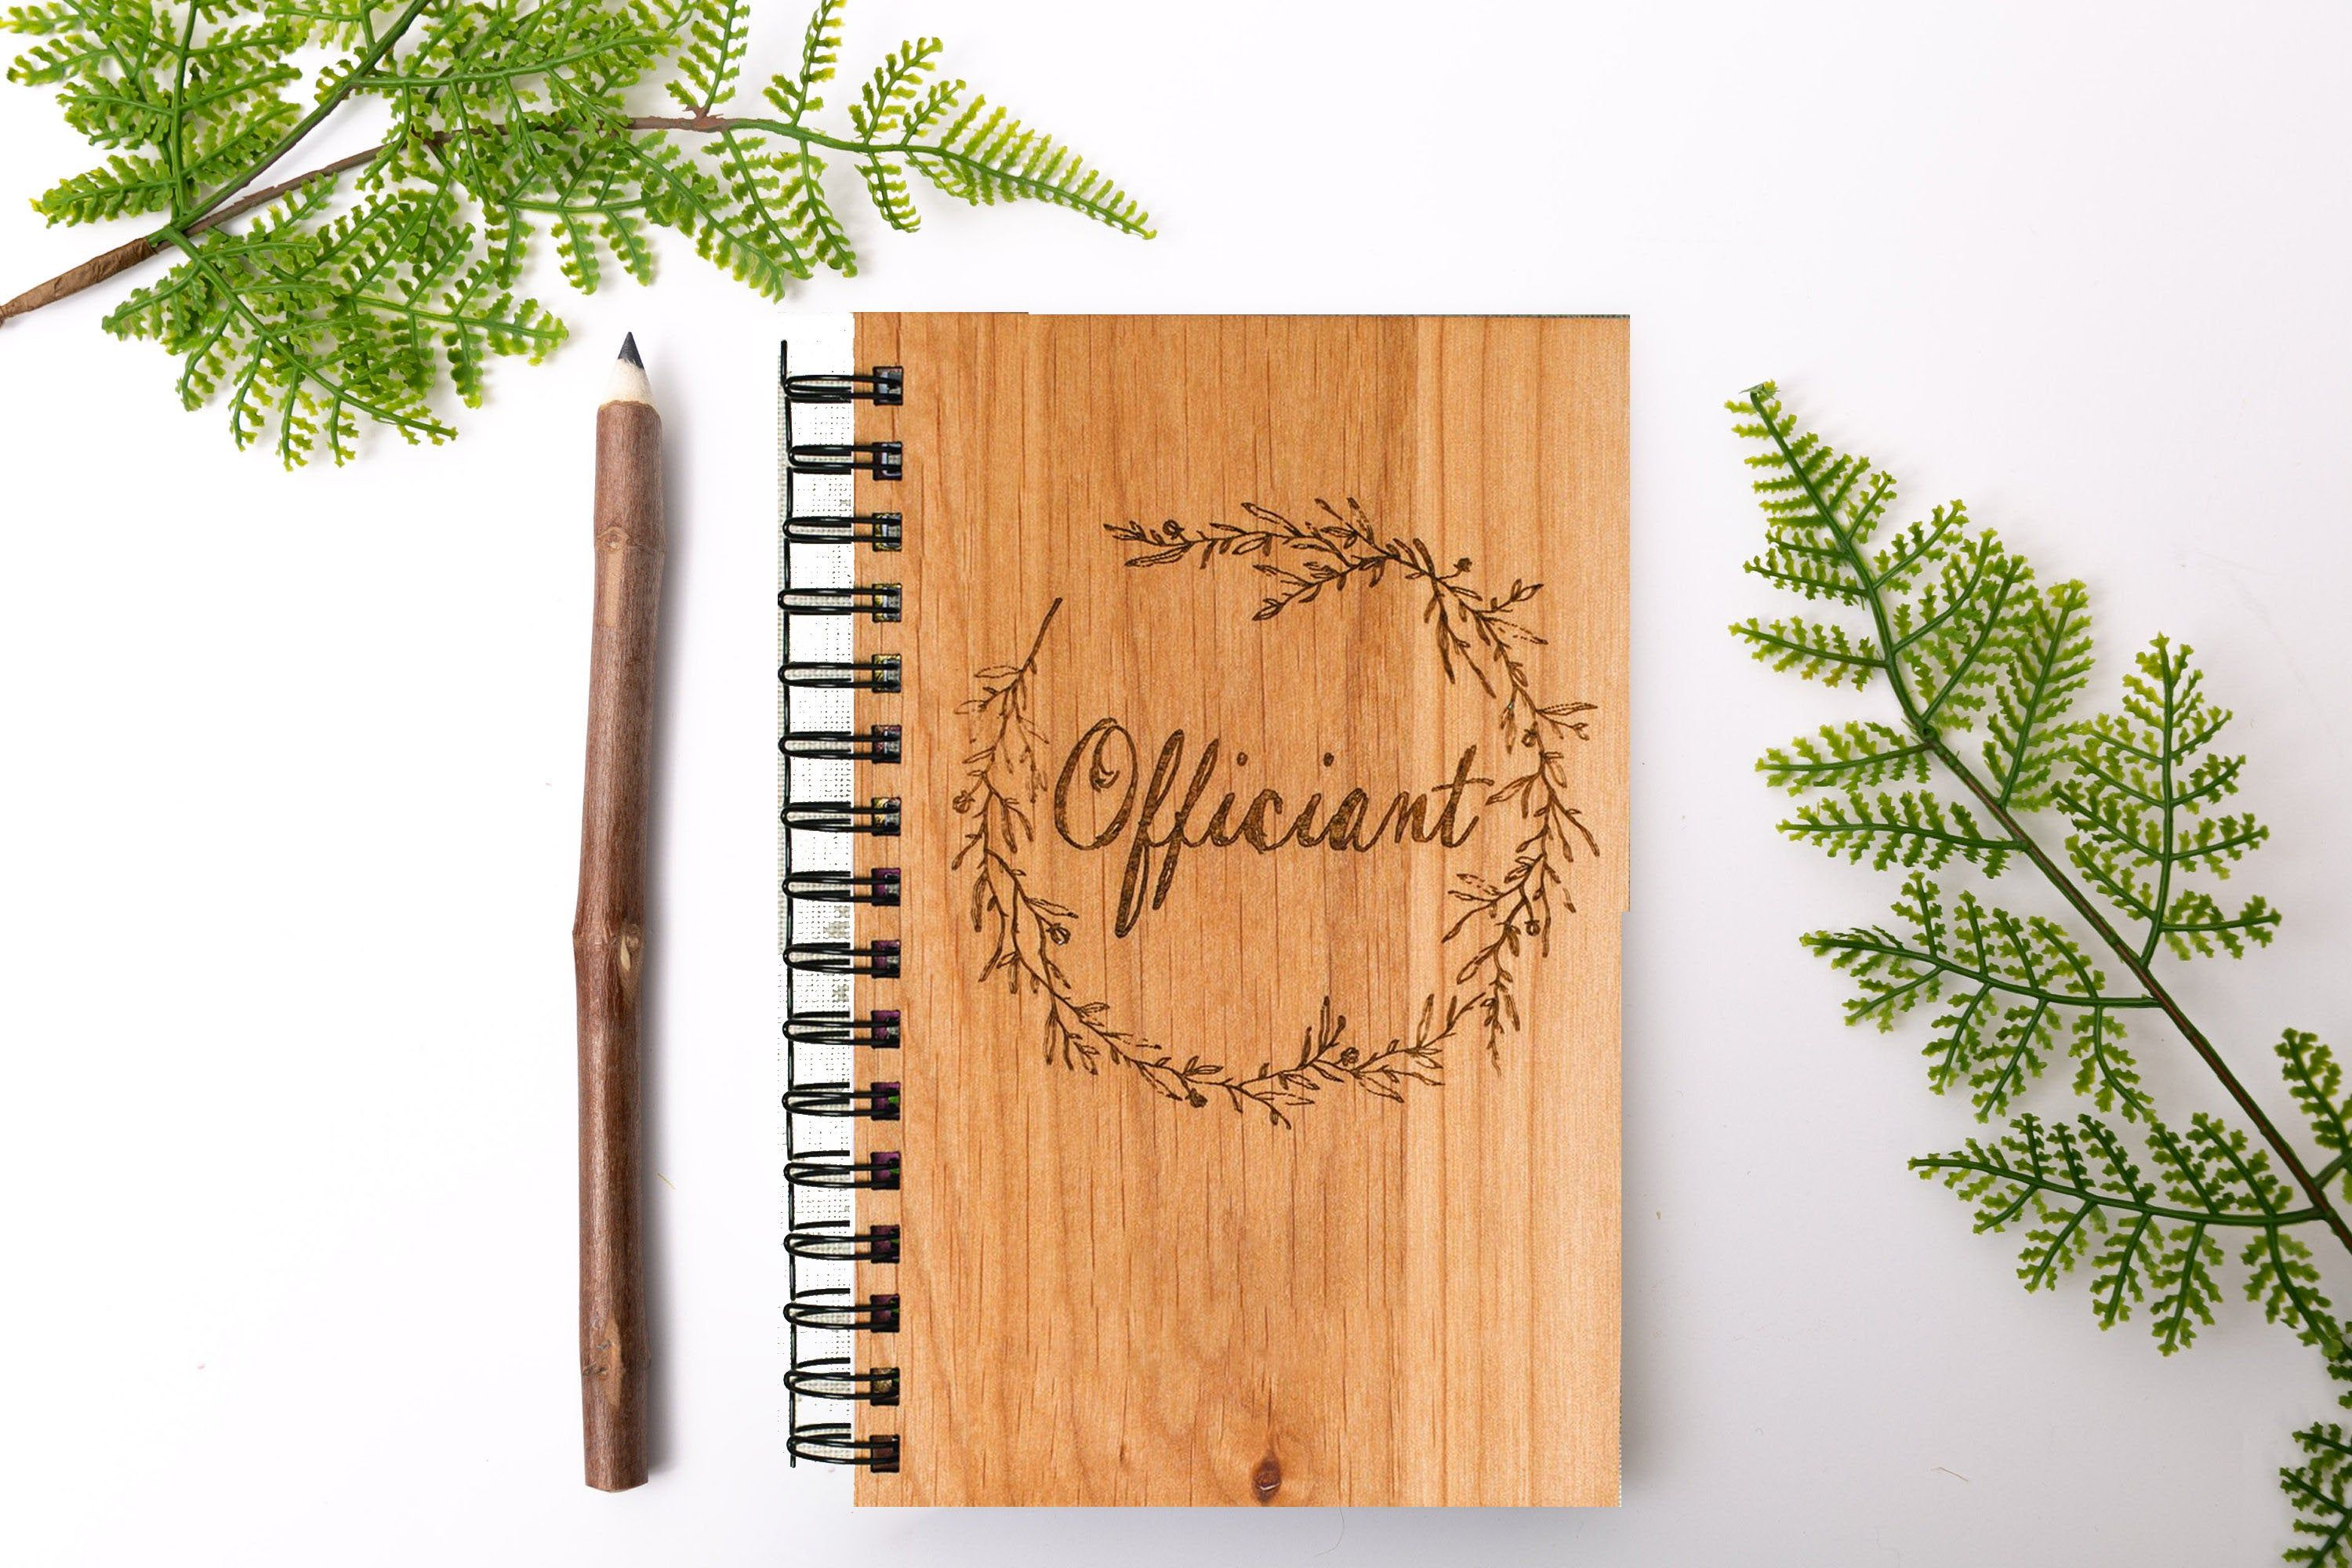 Officiant Wedding Vows Personalized Wood Journal Bamboo